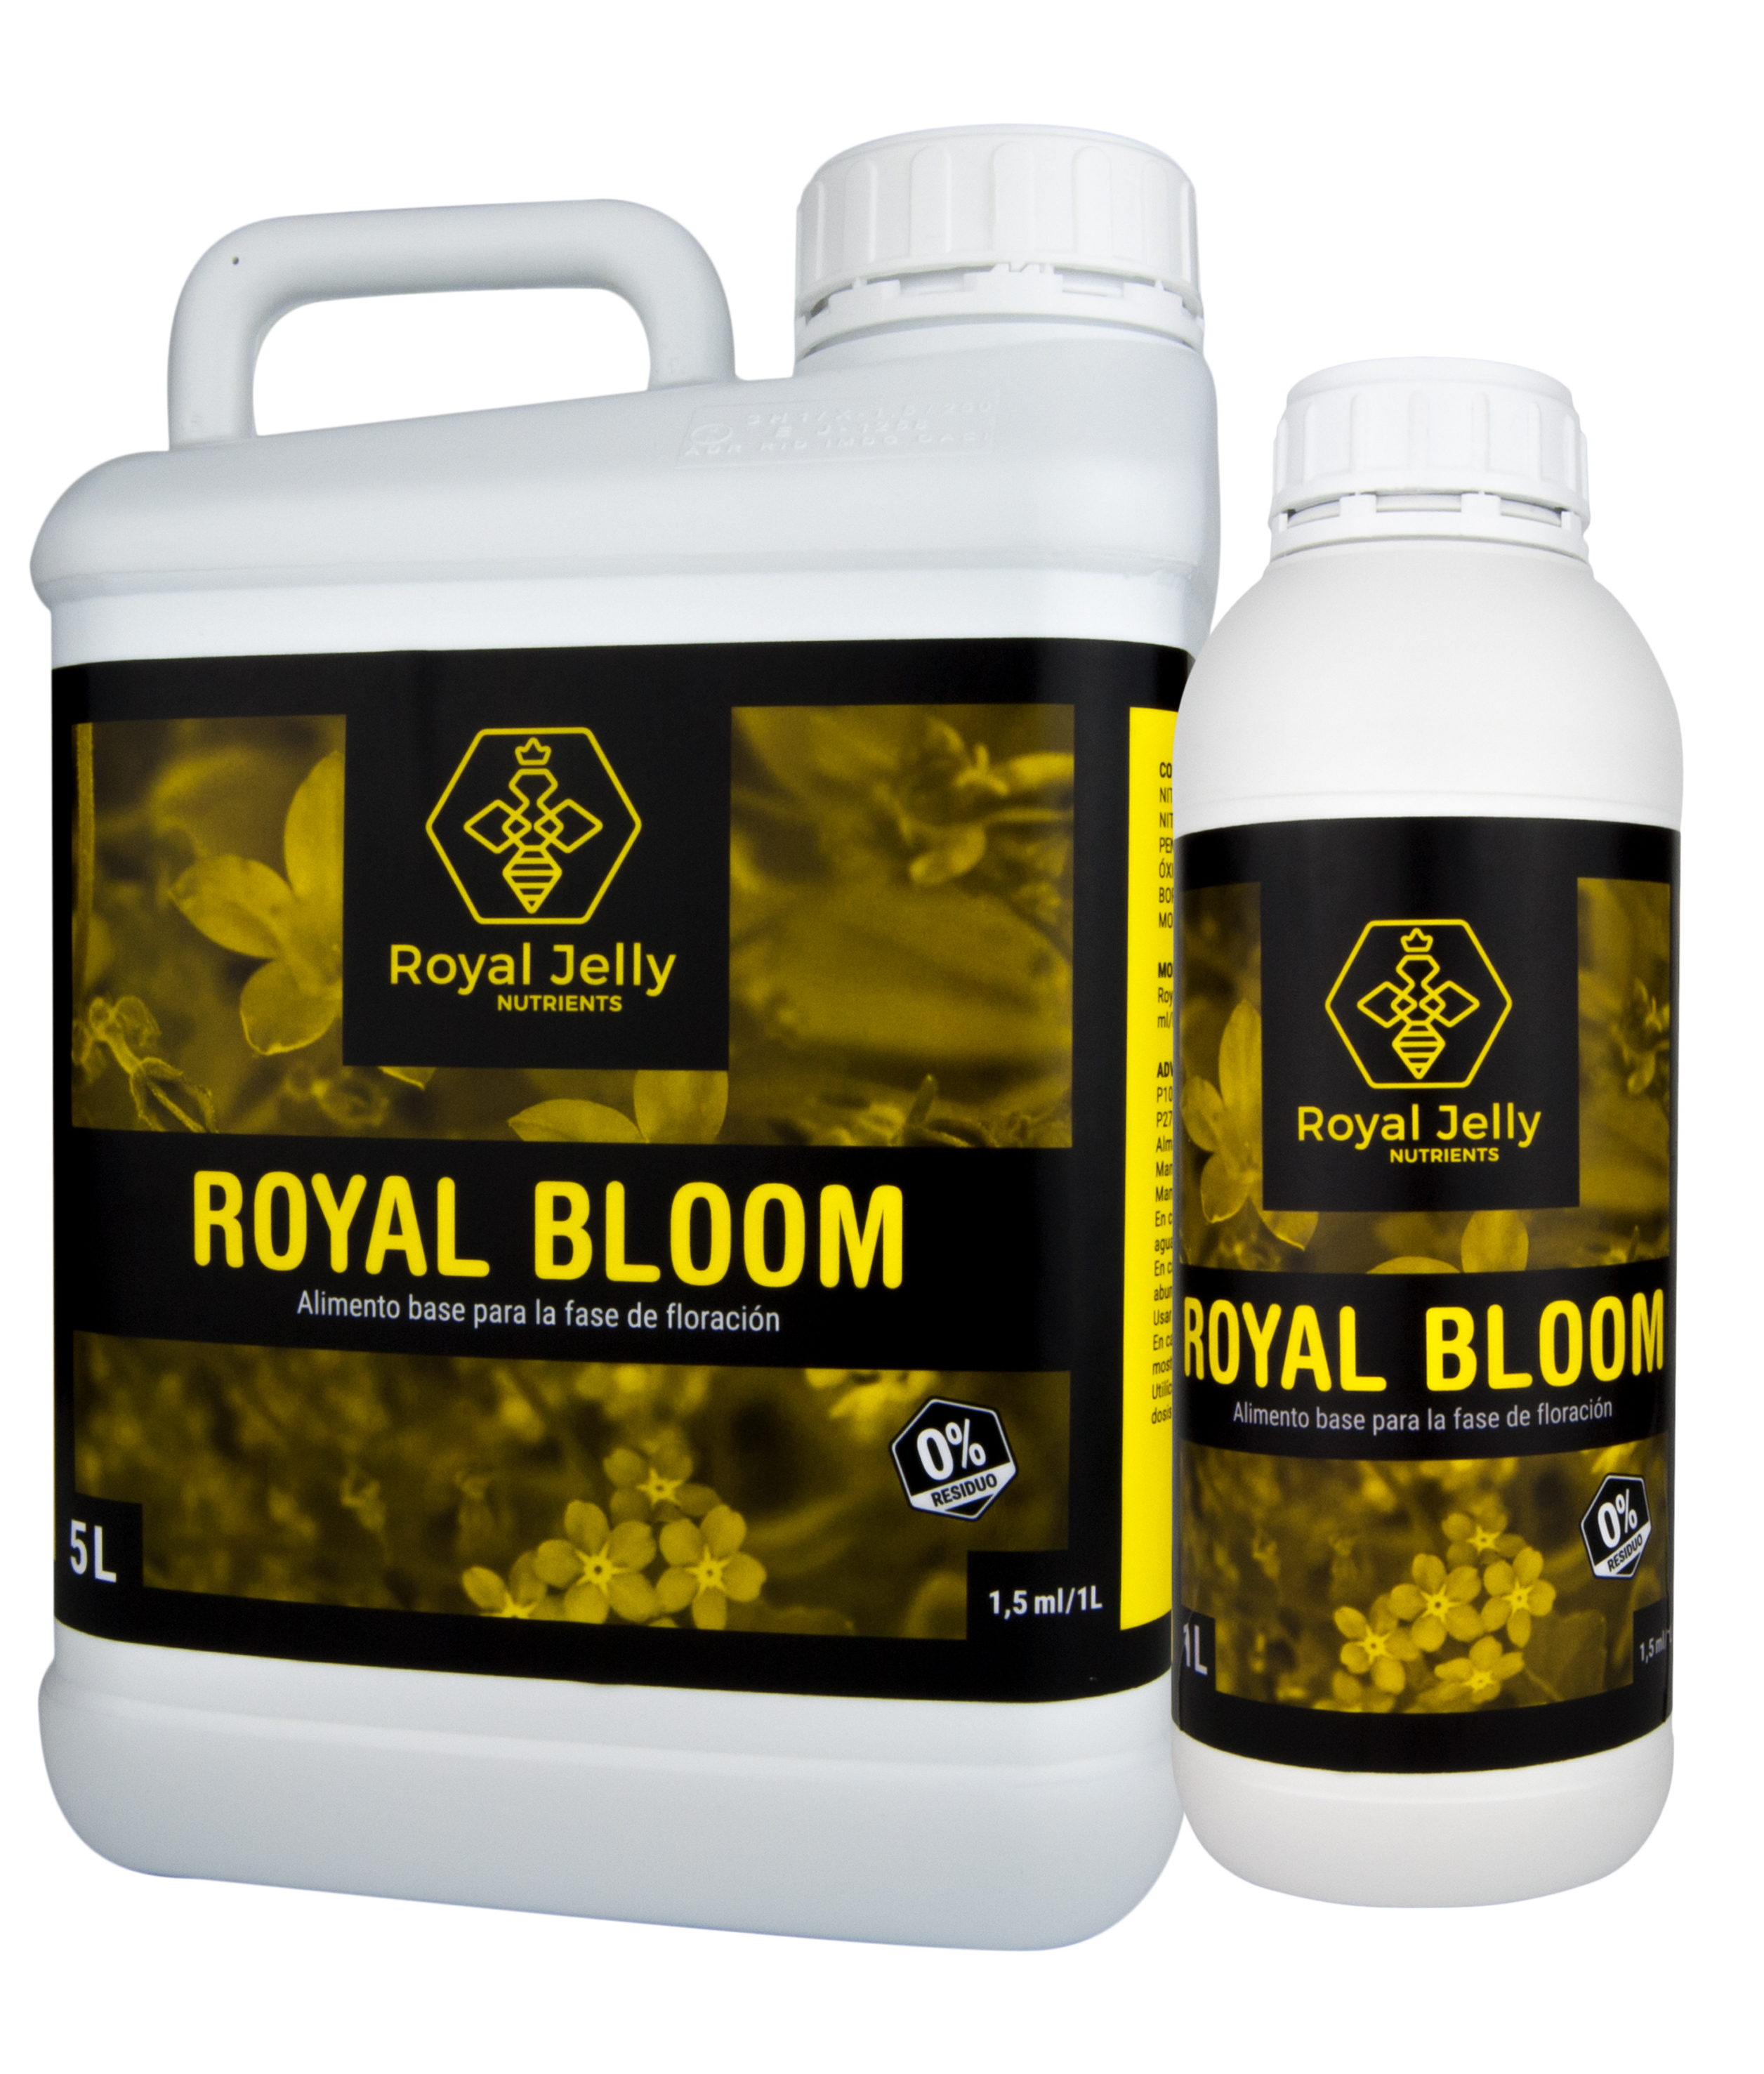 royal bloom bodegó